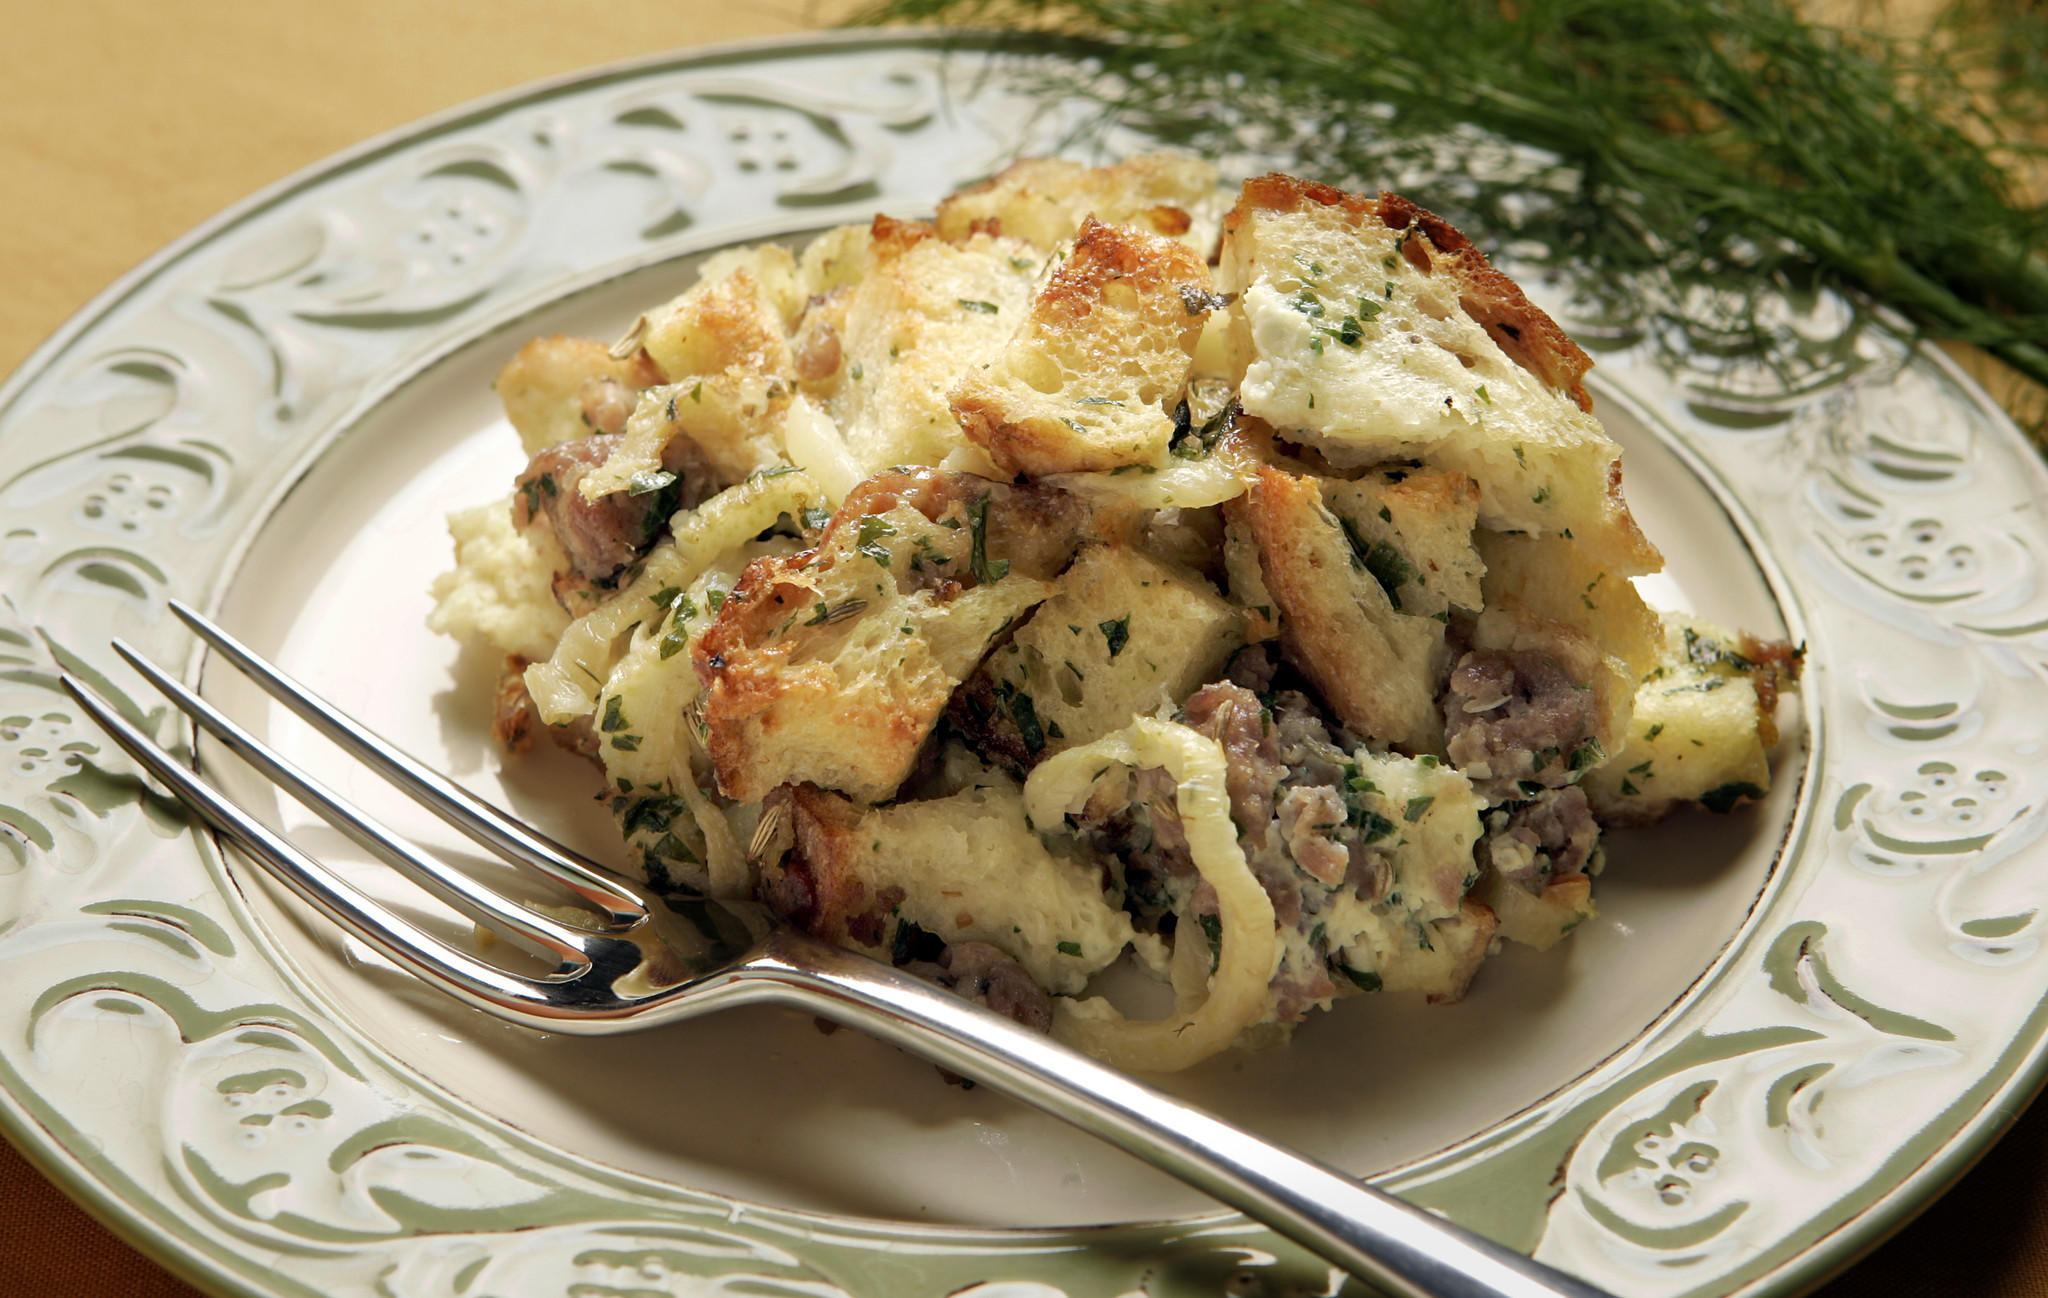 Fennel and sausage bread pudding